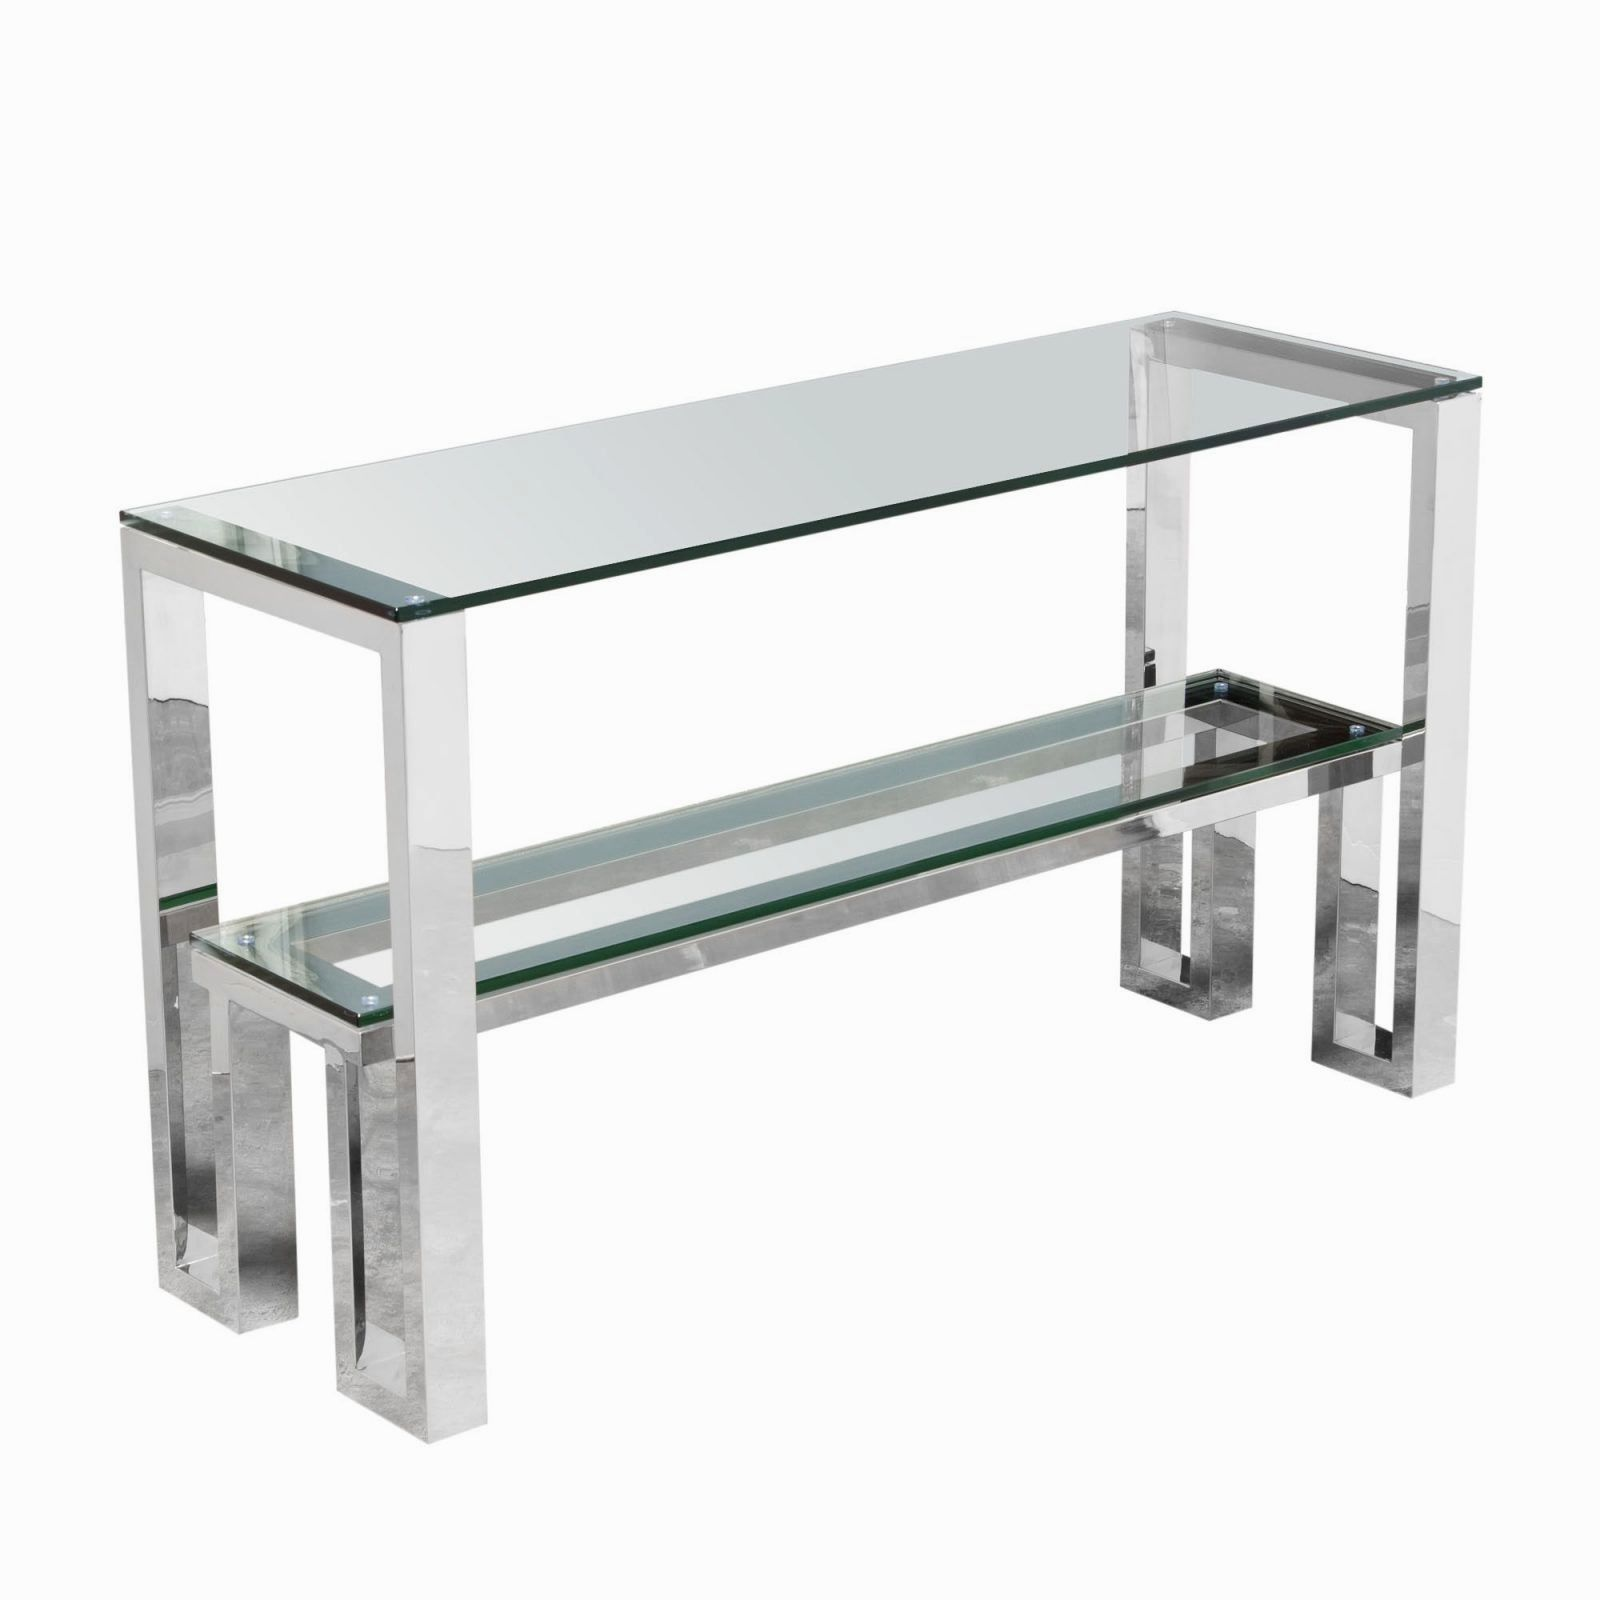 excellent metal and wood sofa table picture-Excellent Metal and Wood sofa Table Inspiration